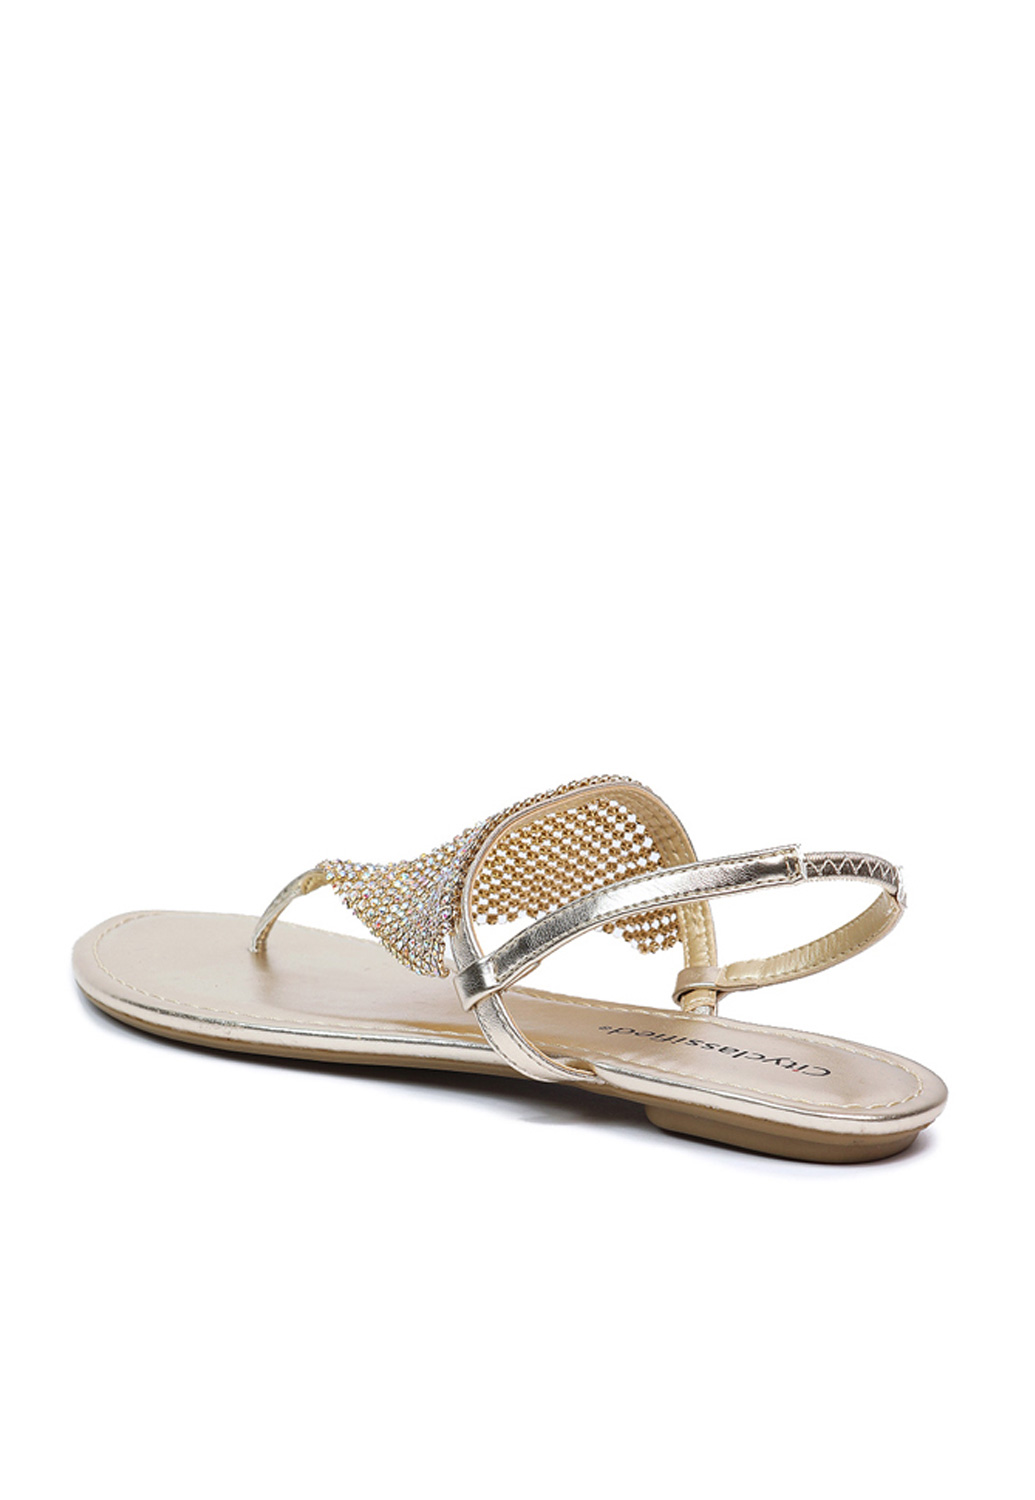 Rhinestone Metallic Thong Sandals